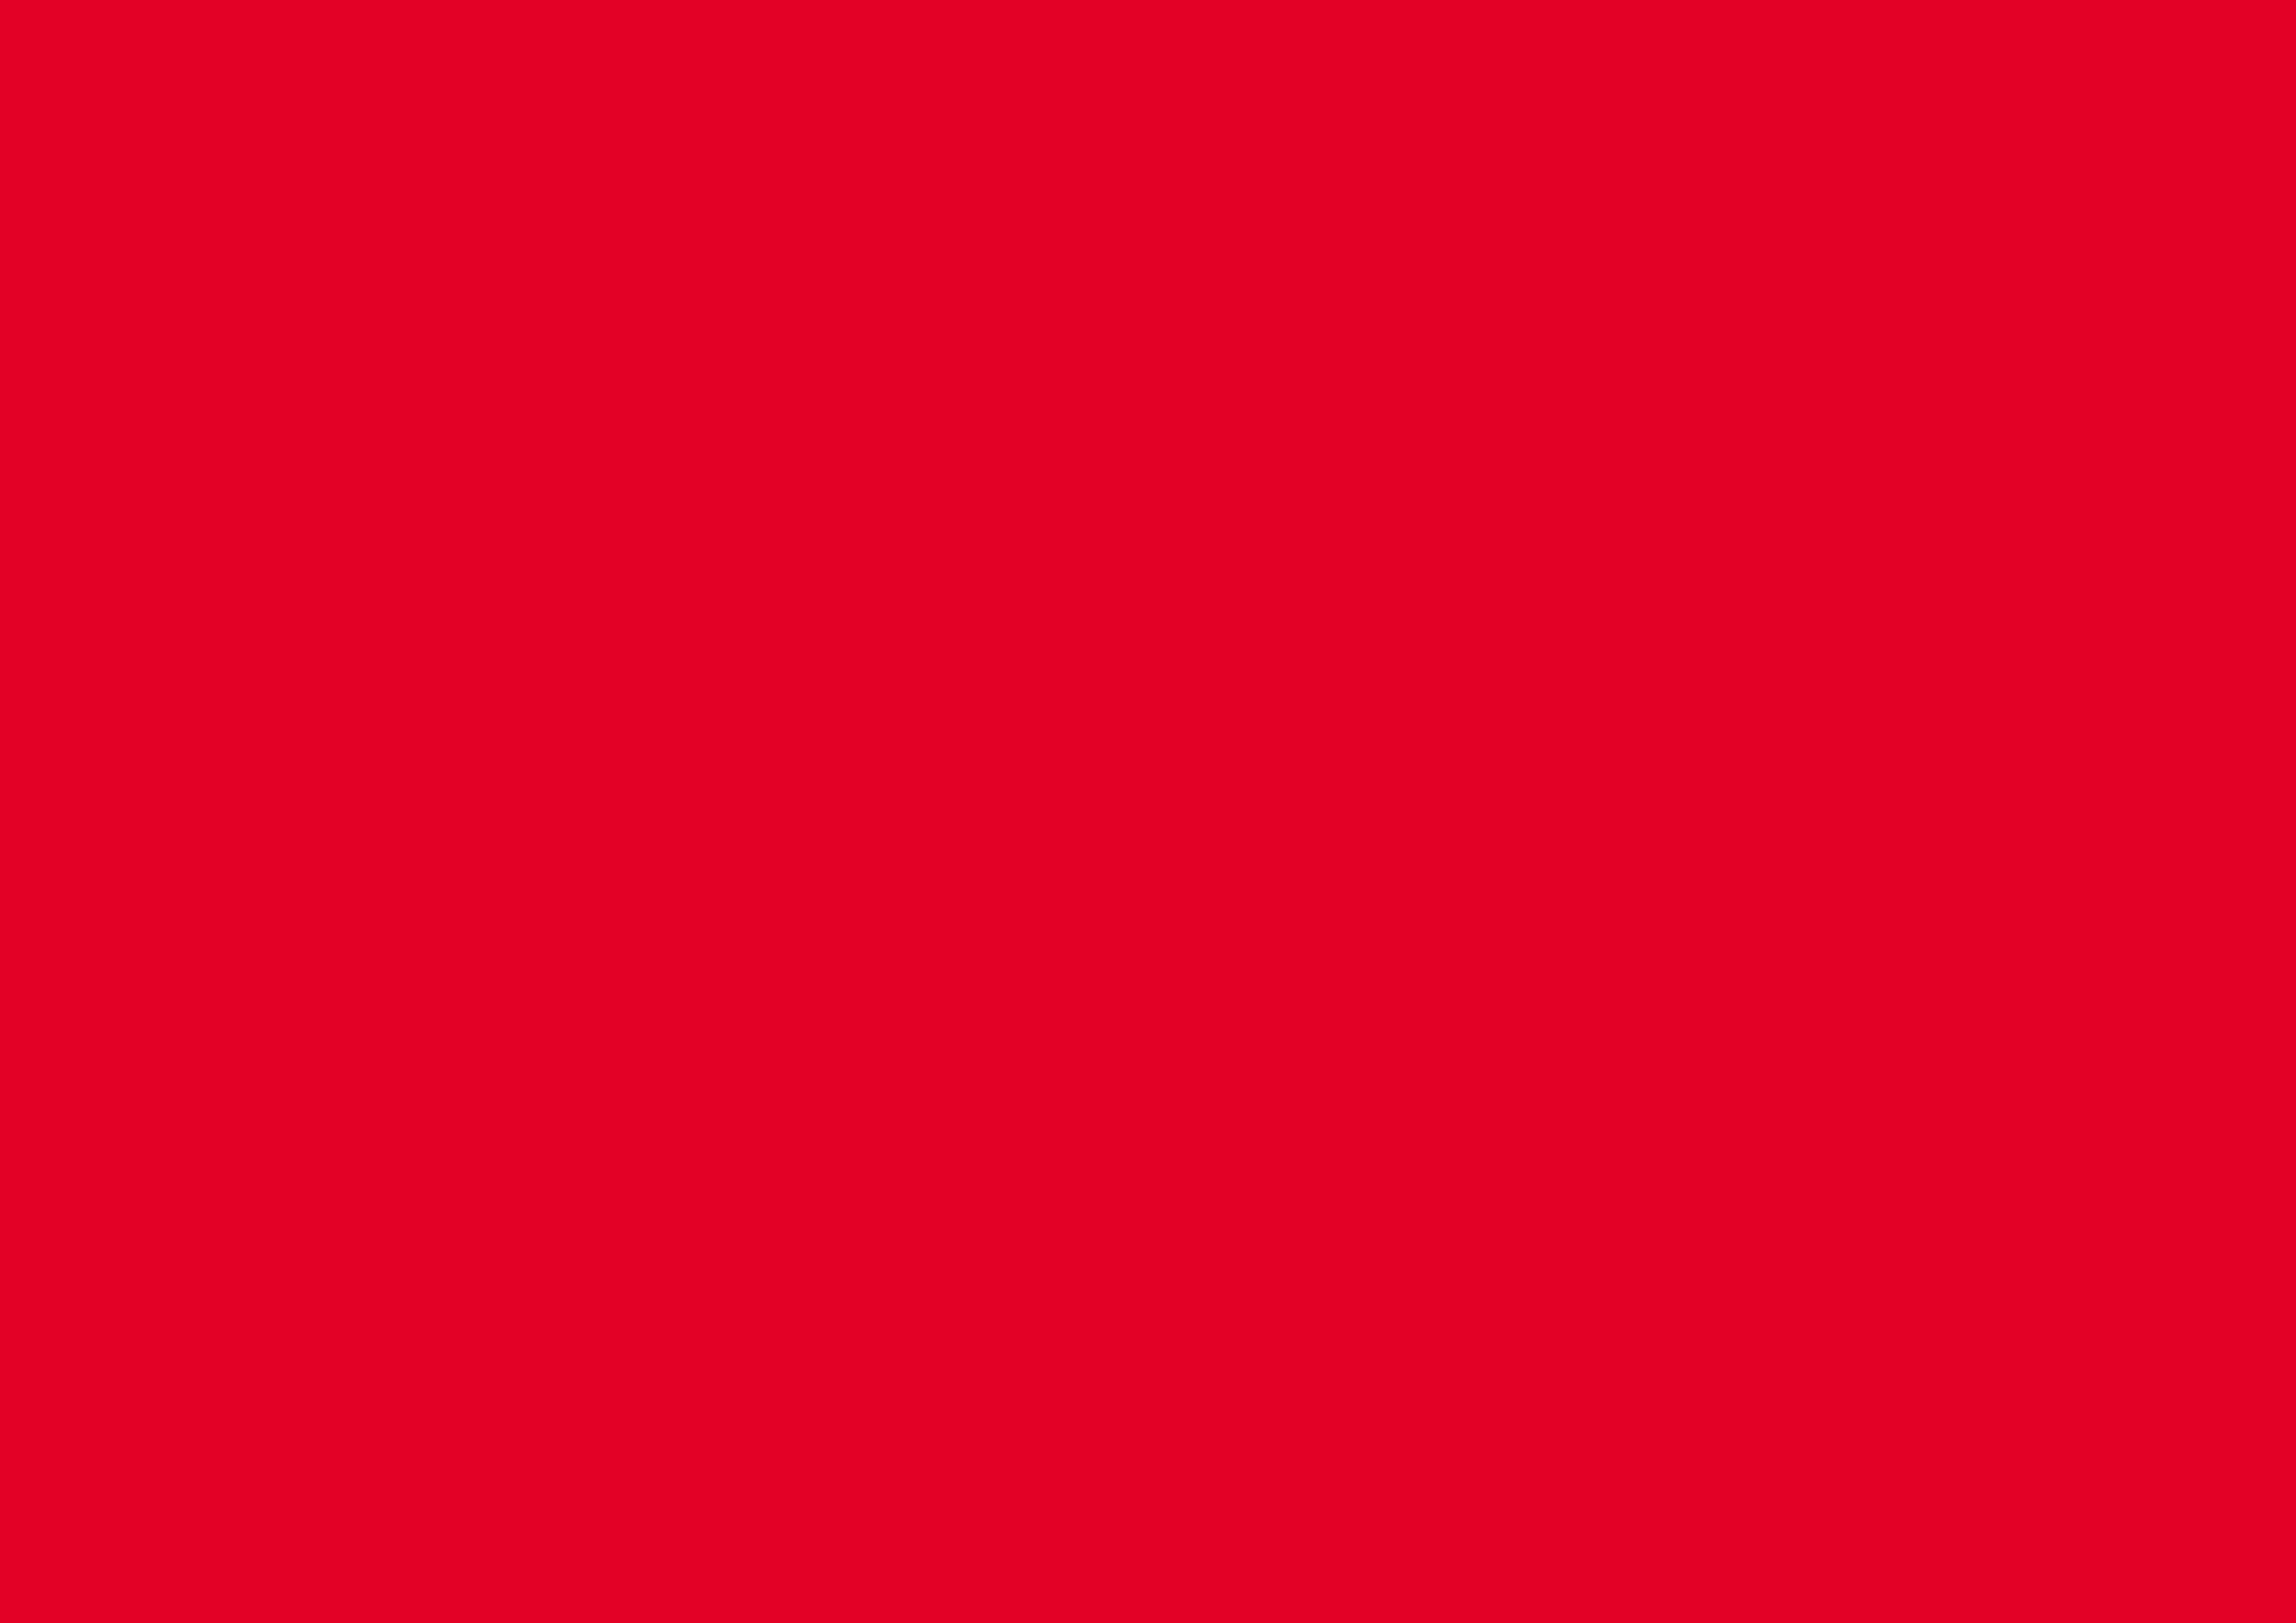 3508x2480 Cadmium Red Solid Color Background